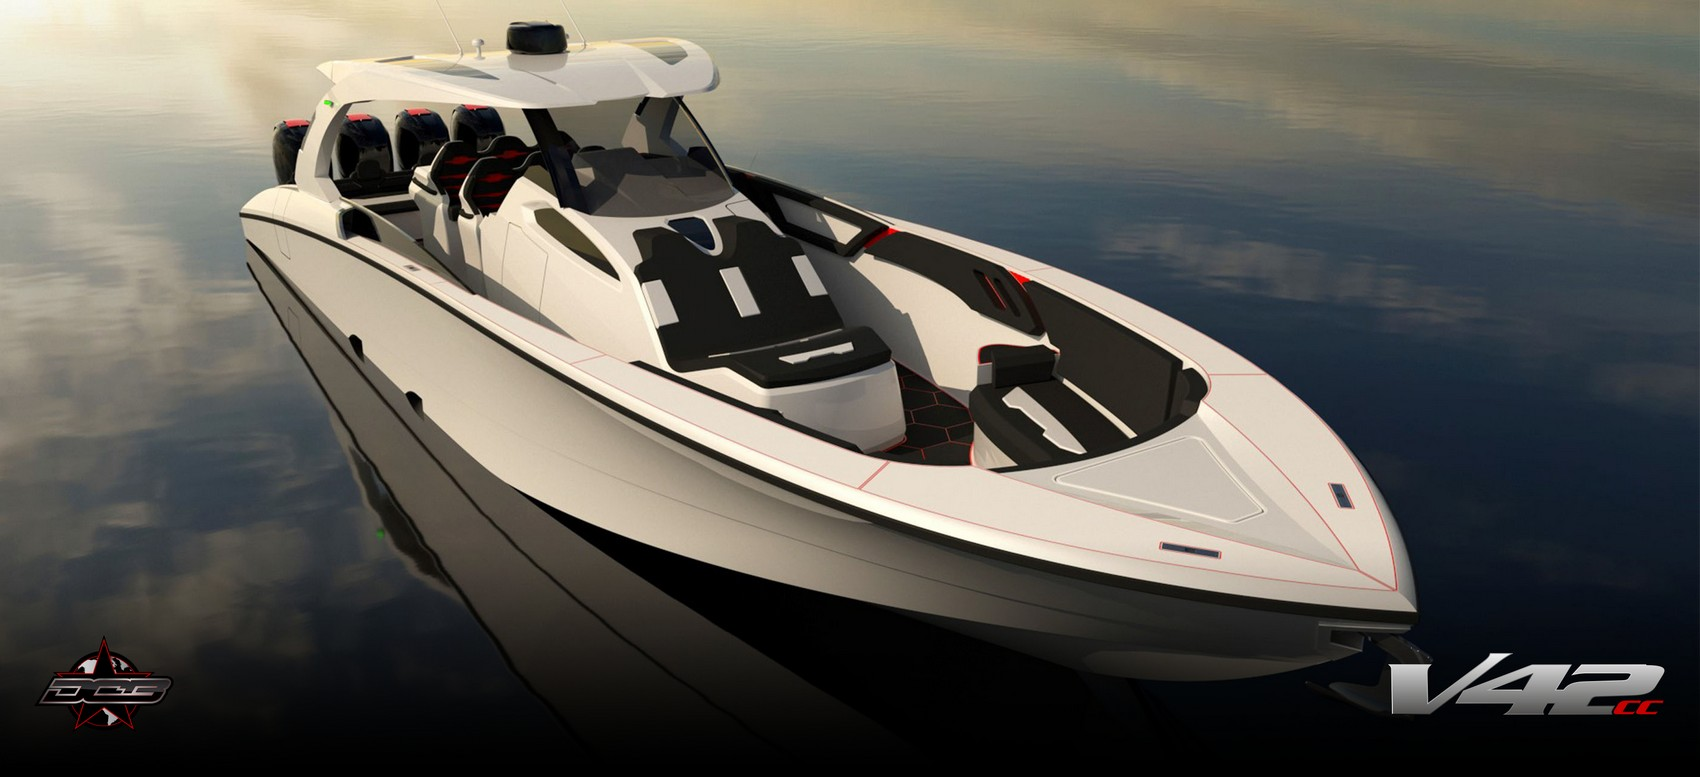 hight resolution of dcb performance boats is bringing its dcb 42 cc to the market in 2020